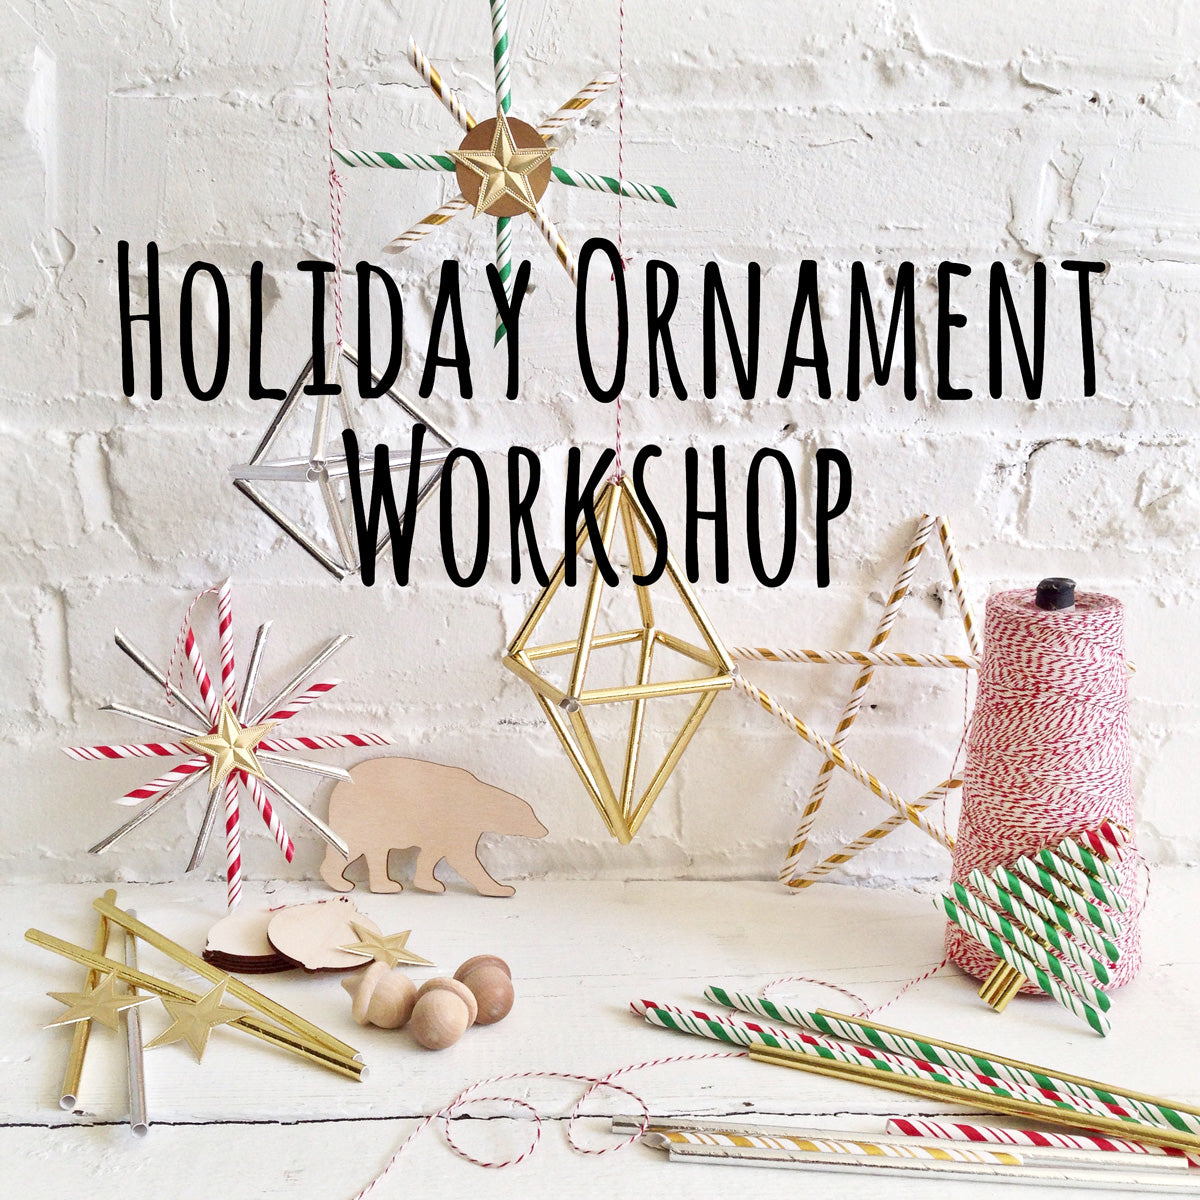 Holiday Ornament Workshop